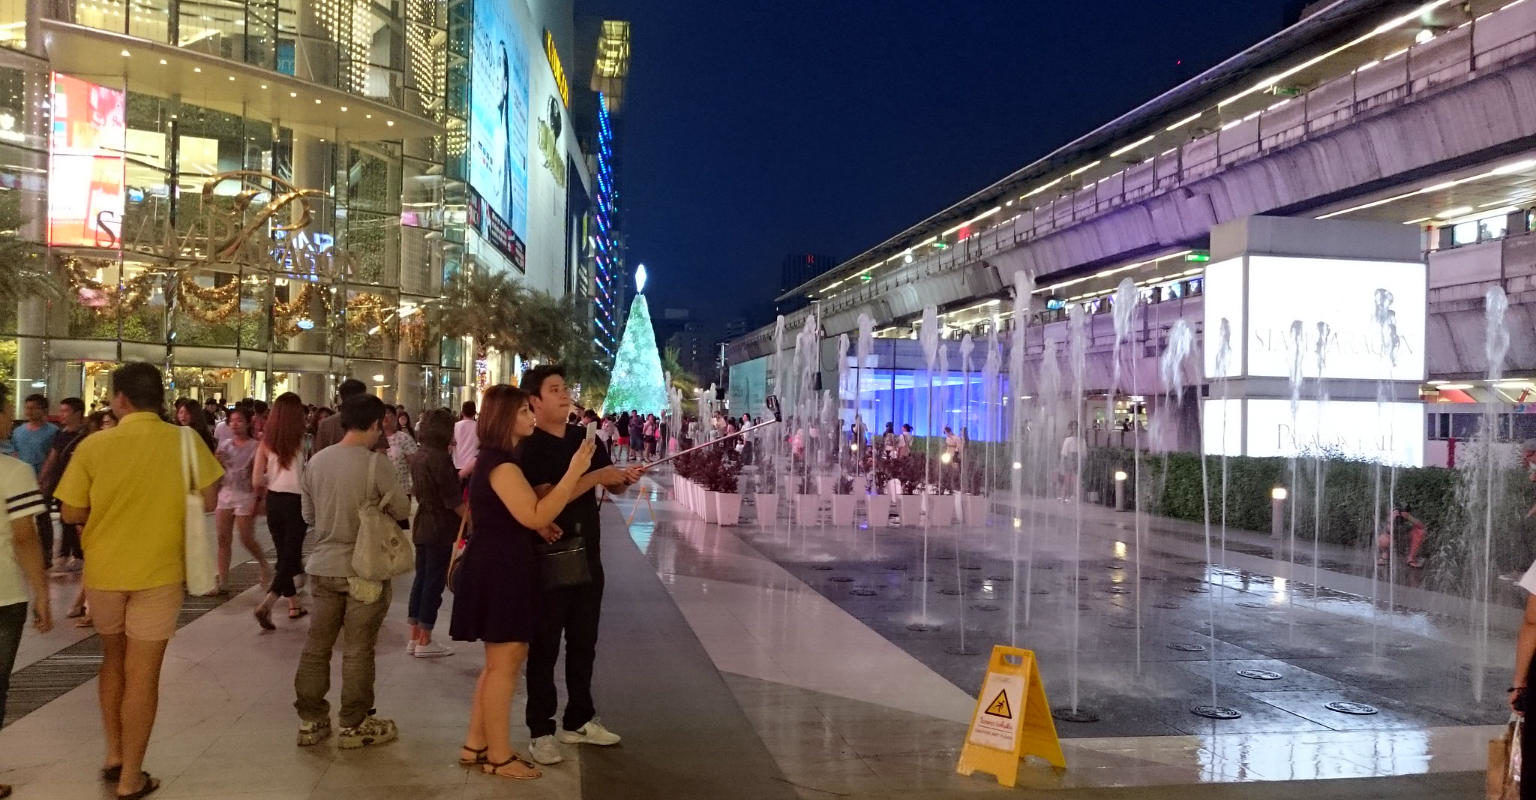 Siam Square, square in front of shopping mall Siam Paragon